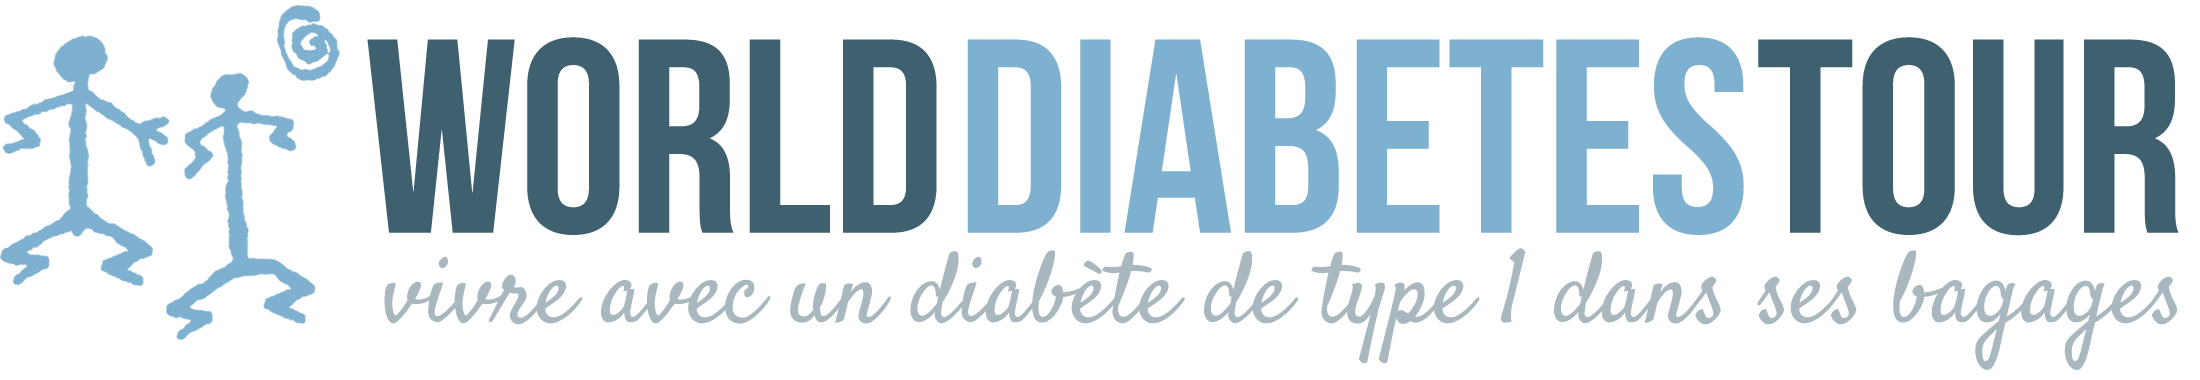 World diabetes tour